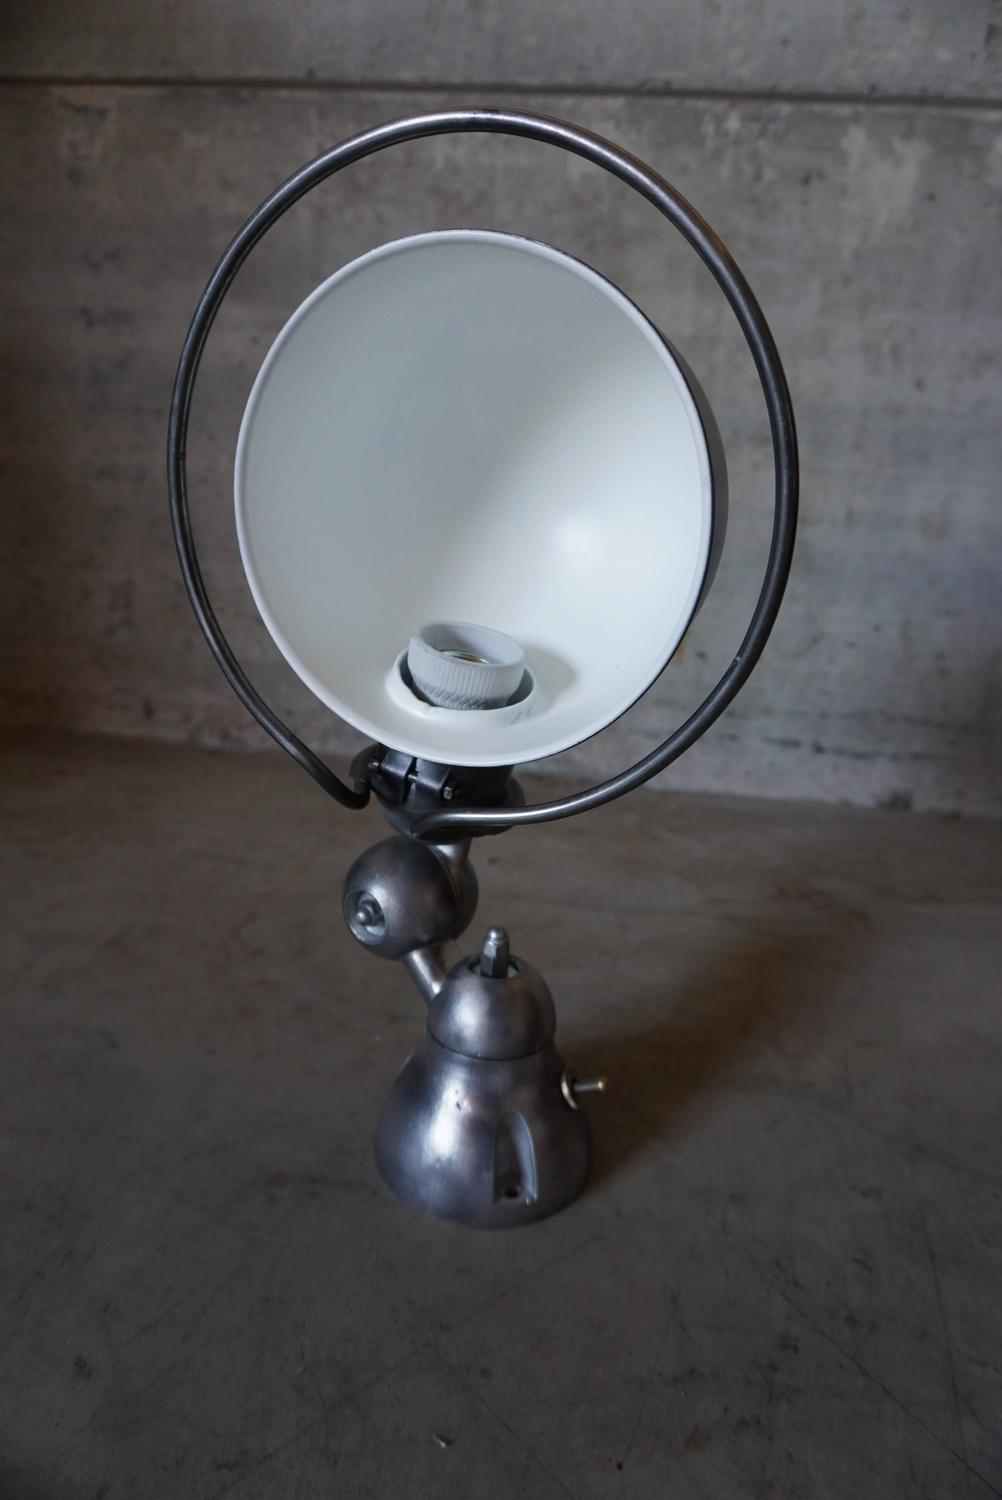 French Industrial Wall Lights : French Industrial Wall Lights by Jean-Louis Domecq for Jielde, 1950s For Sale at 1stdibs